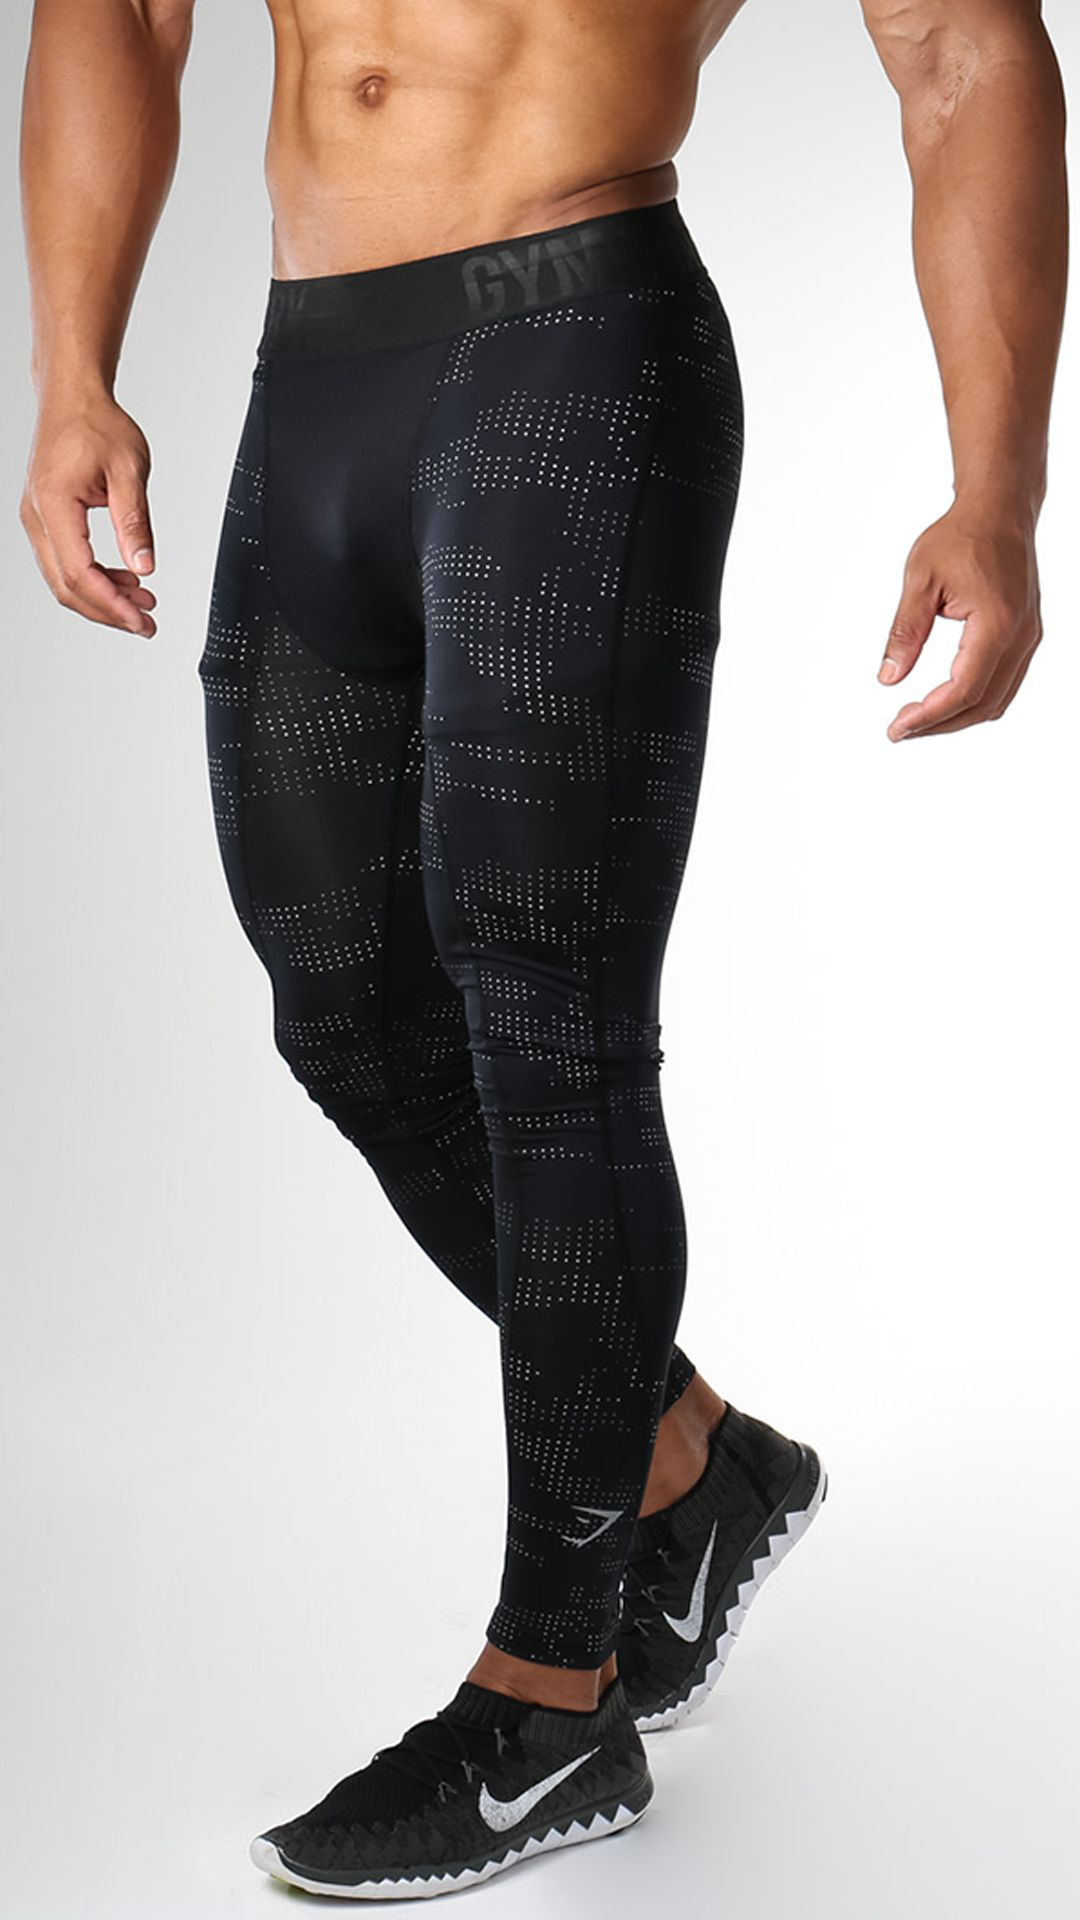 9f26a141a The latest leggings release from Gymshark. Introducing the Blackout leggings  launching the 18th November